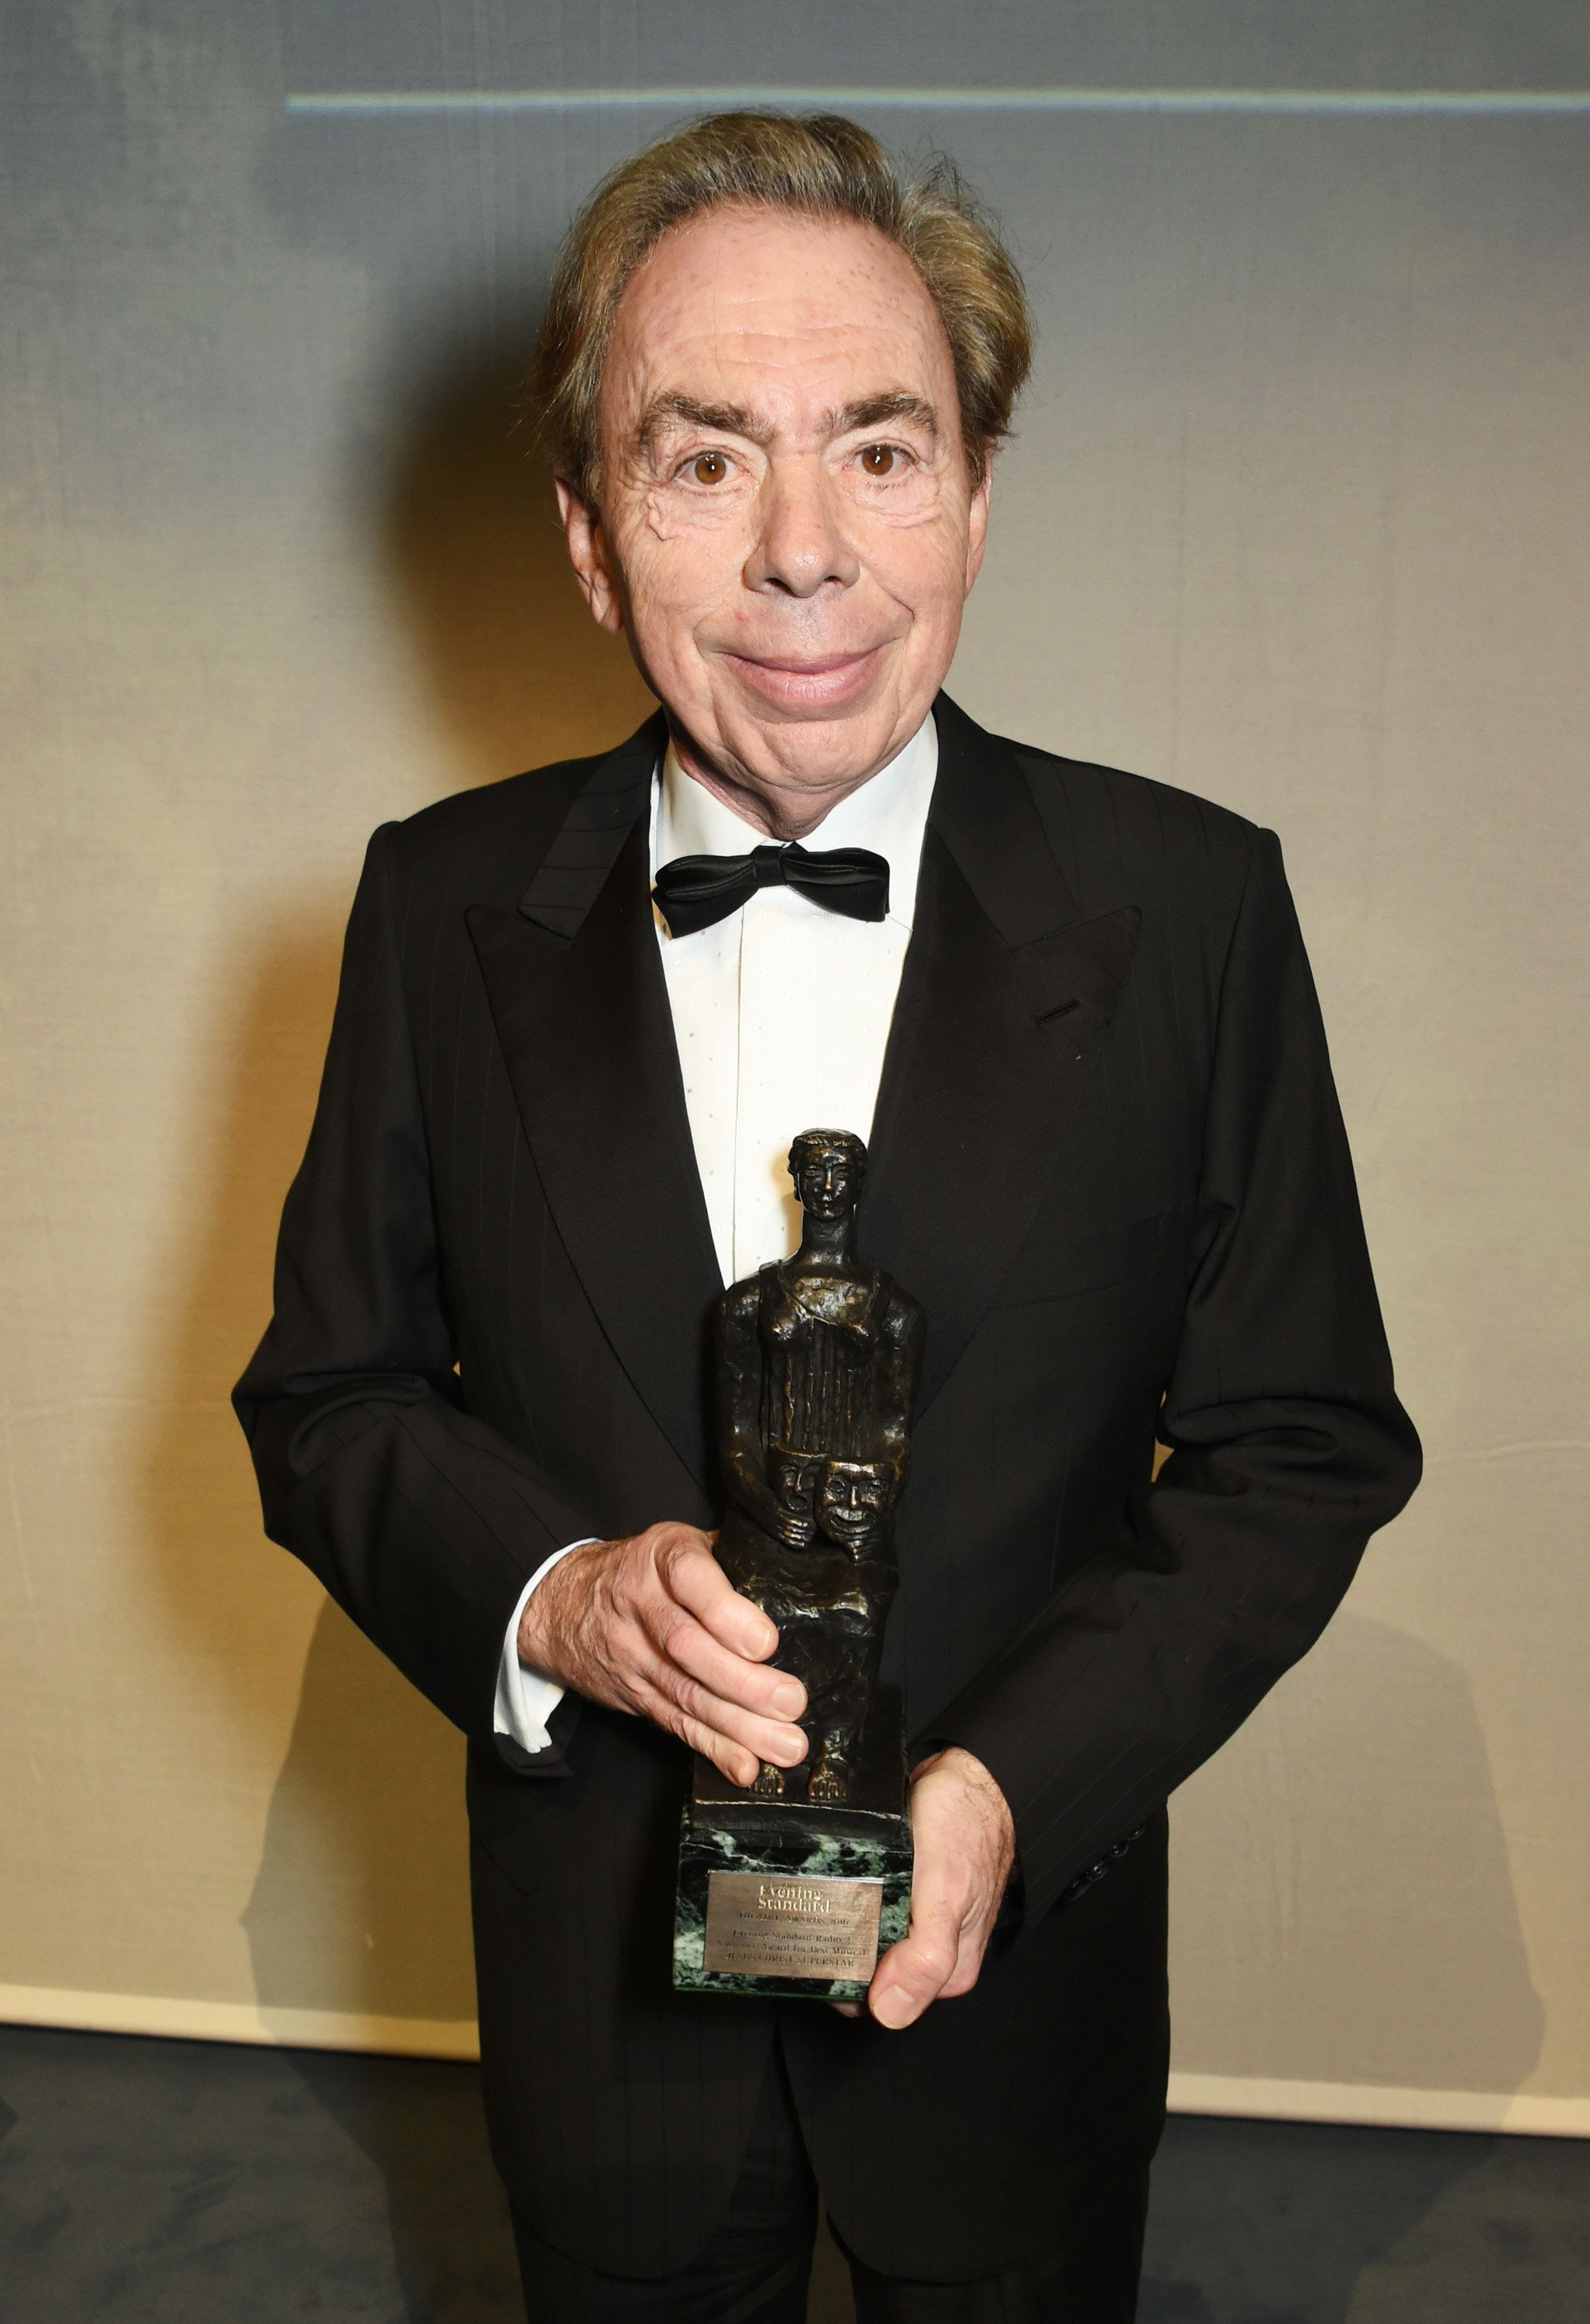 LONDON, ENGLAND - NOVEMBER 13:  Lord Andrew Lloyd Webber attend The 62nd London Evening Standard Theatre Awards after party, recognising excellence from across the world of theatre and beyond, at The Old Vic Theatre on November 13, 2016 in London, England.  (Photo by David M. Benett/Dave Benett/Getty Images)